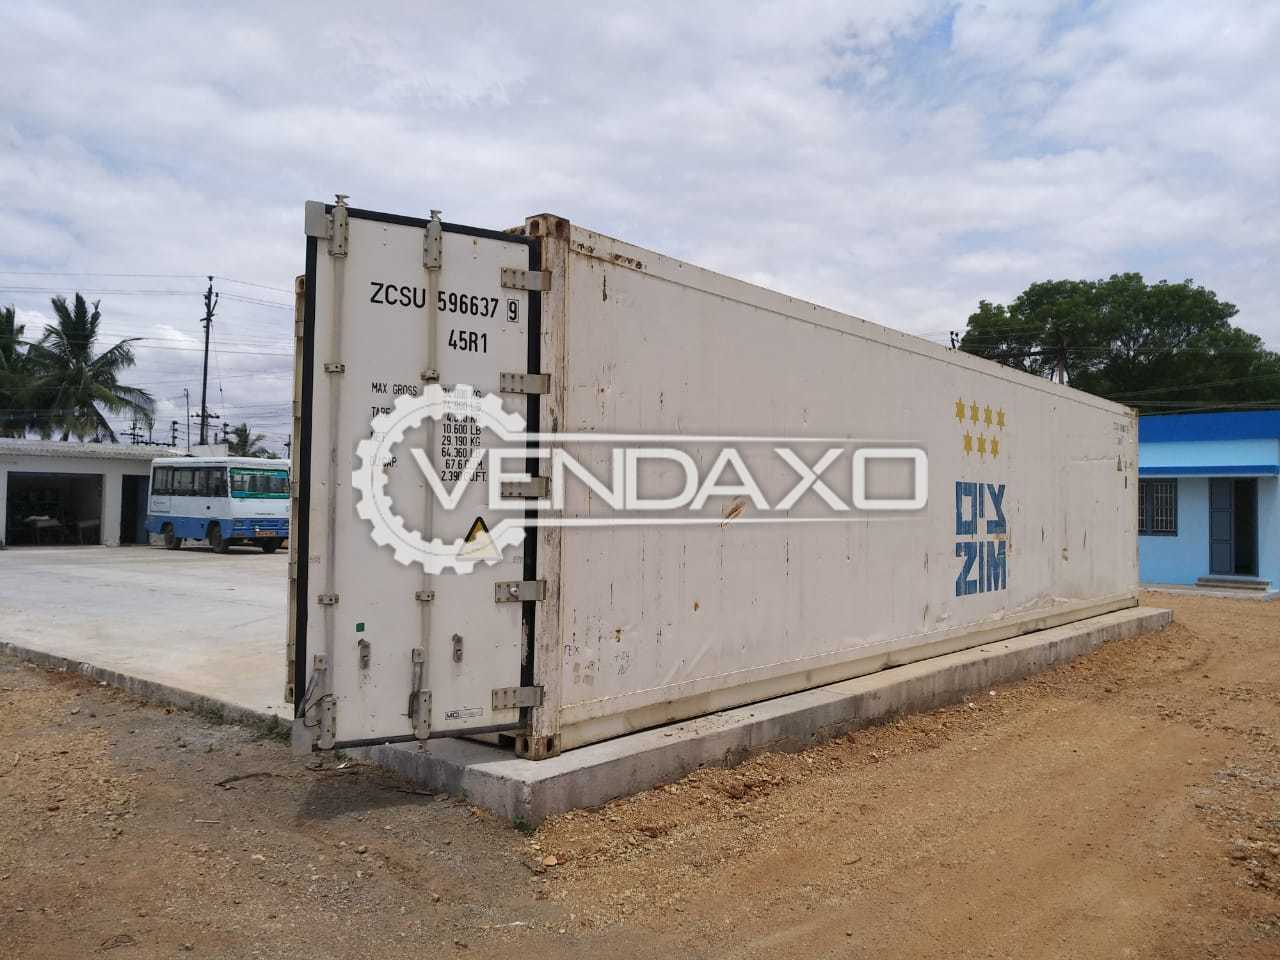 Available For Sale Thermal Shielding Wall - 40 Feet